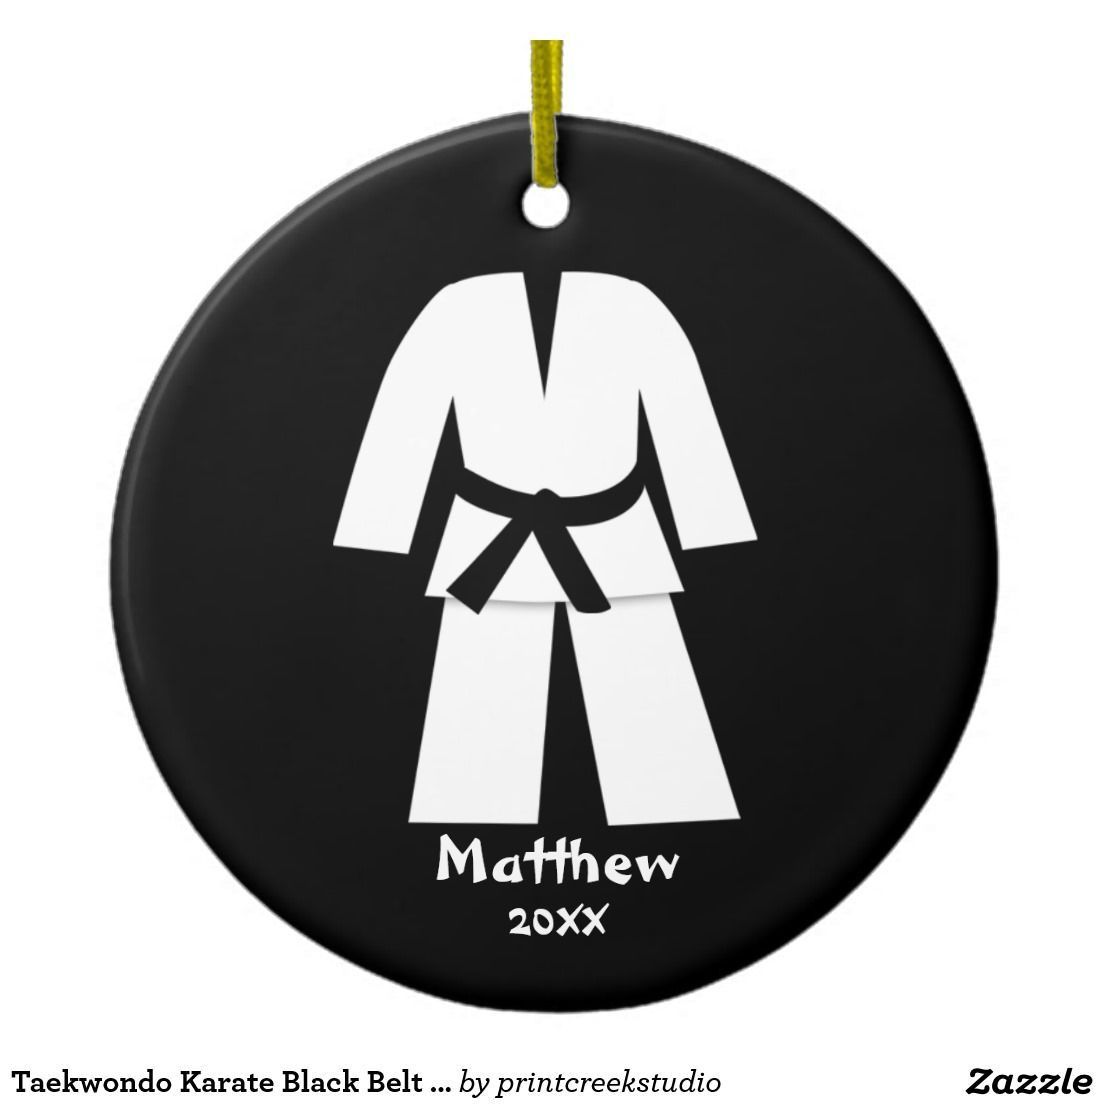 Karate ornament - Taekwondo Karate Black Belt Personalized Ceramic Ornament